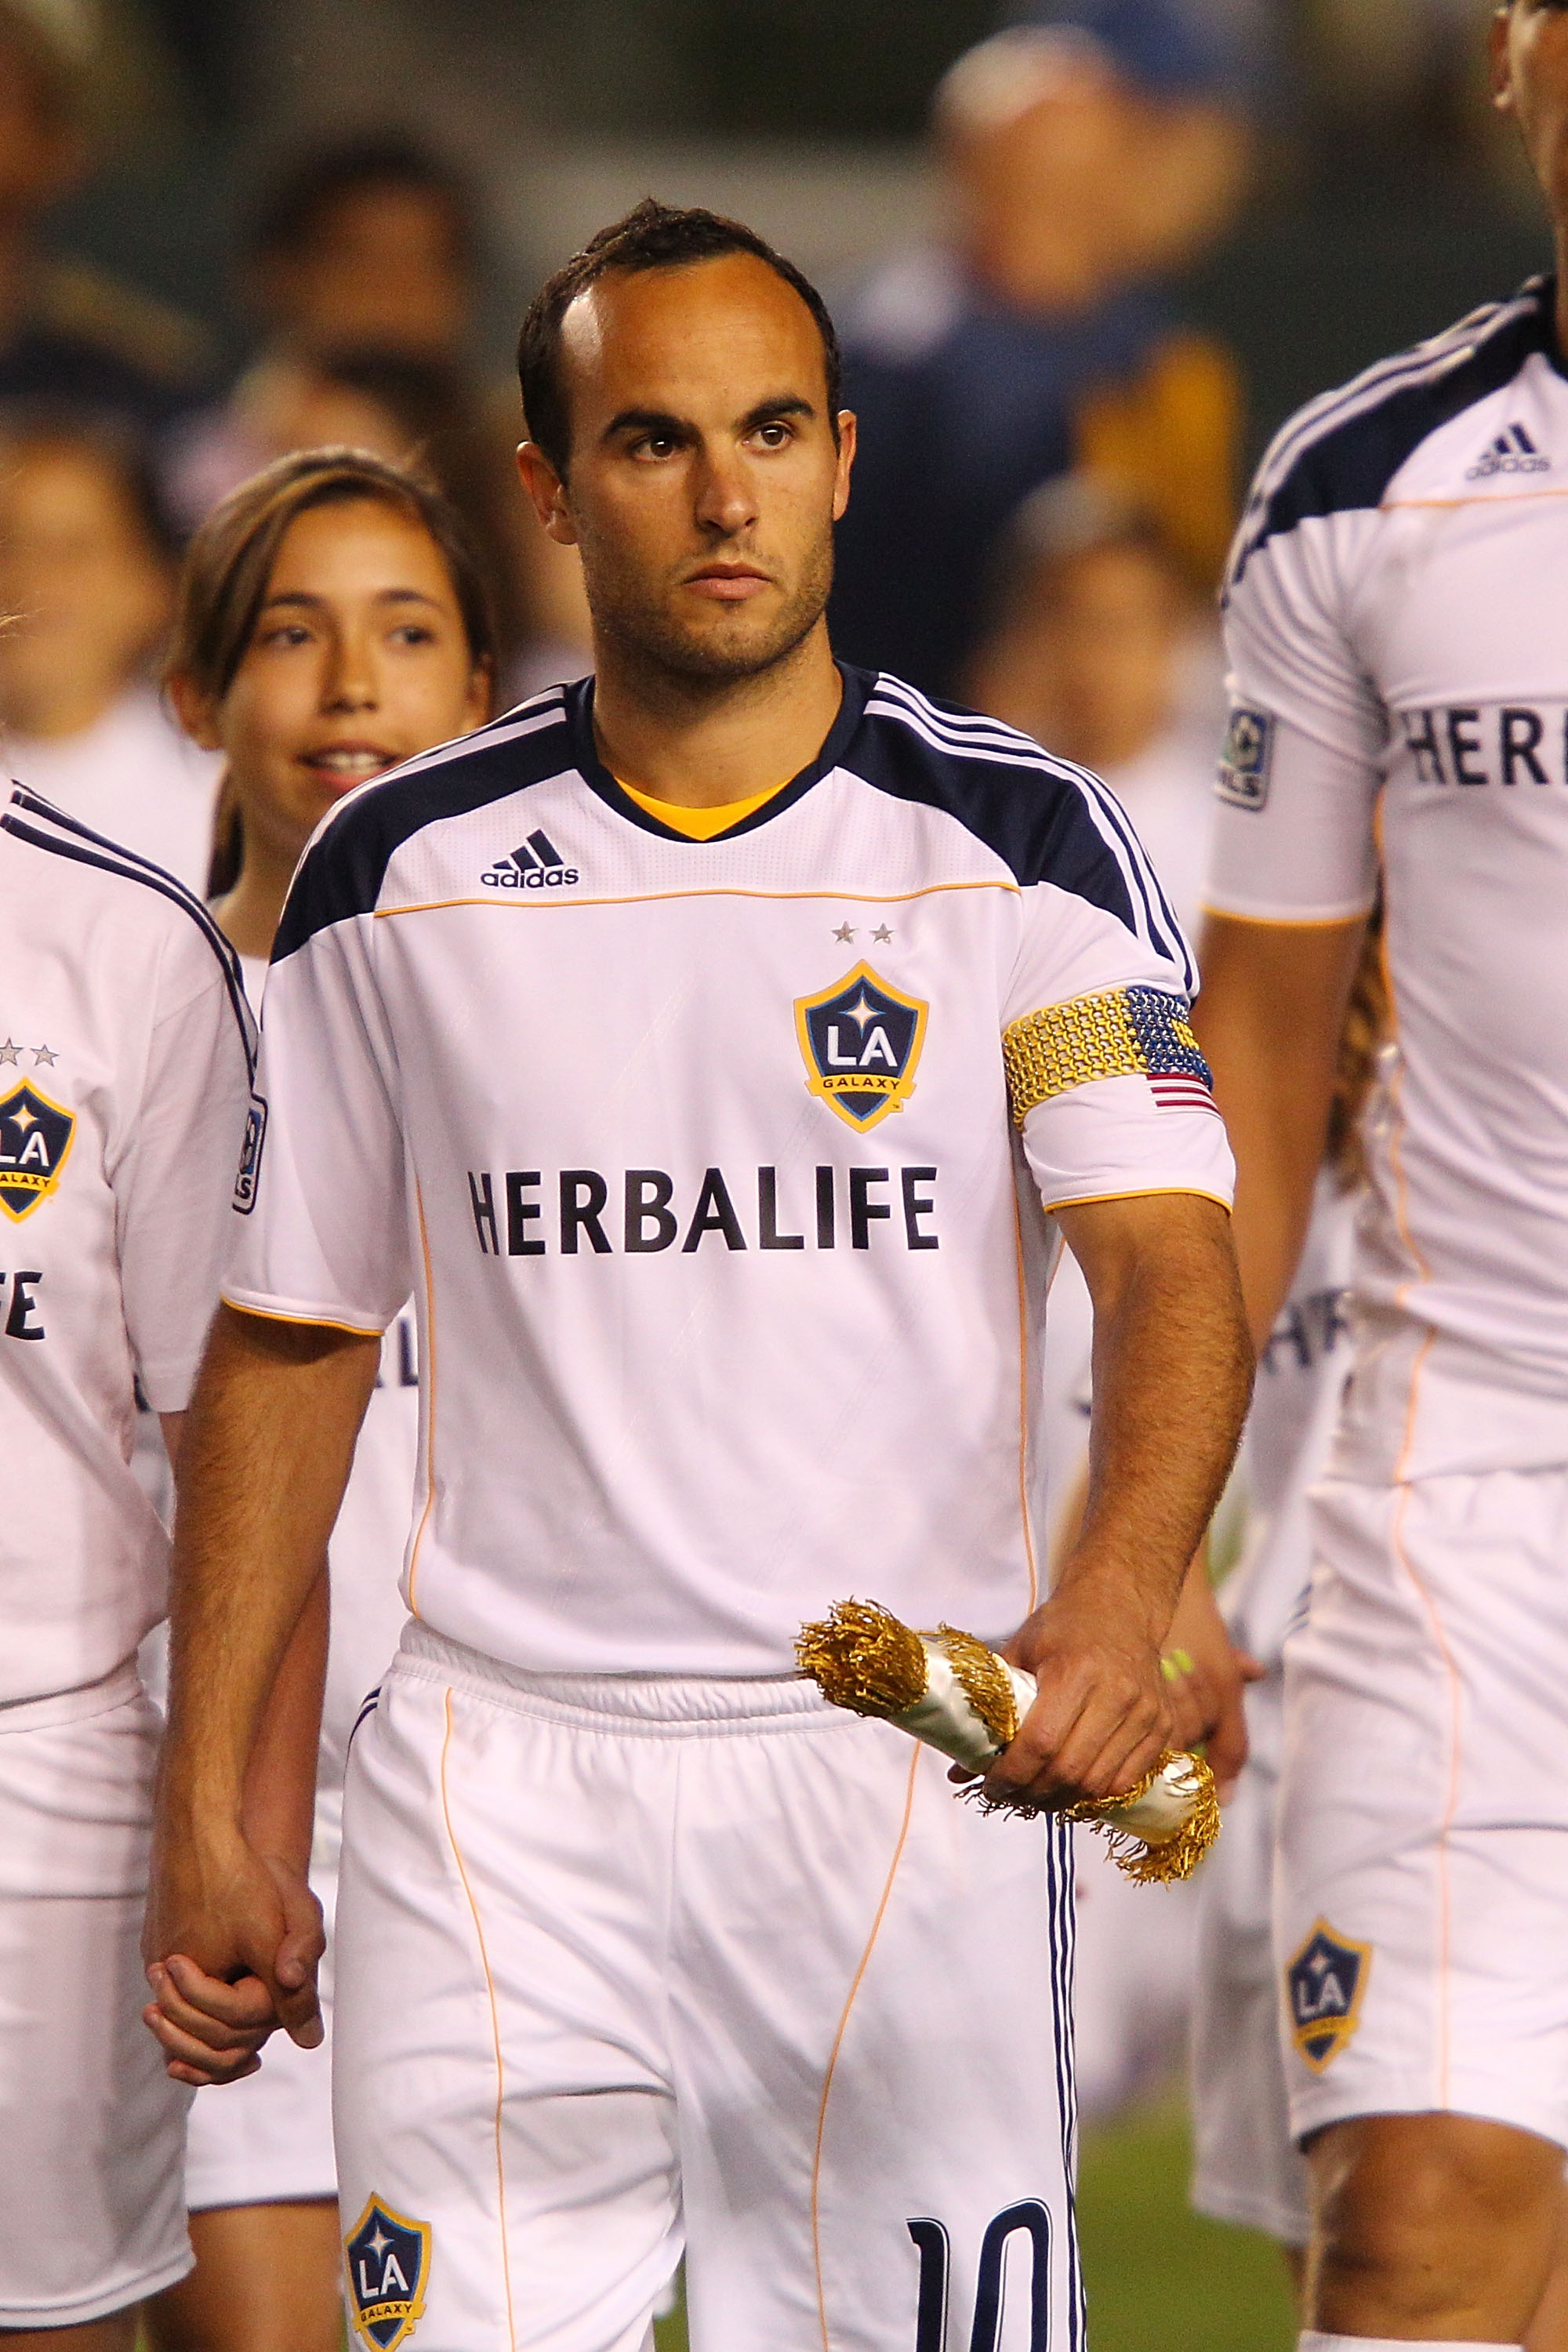 CARSON, CA - APRIL 02:  Landon Donovan #10 of the Los Angeles Galaxy enters the field prior to the start of the match against the Philadelphia Union at The Home Depot Center on April 2, 2011 in Carson, California.  (Photo by Joe Scarnici/Getty Images)